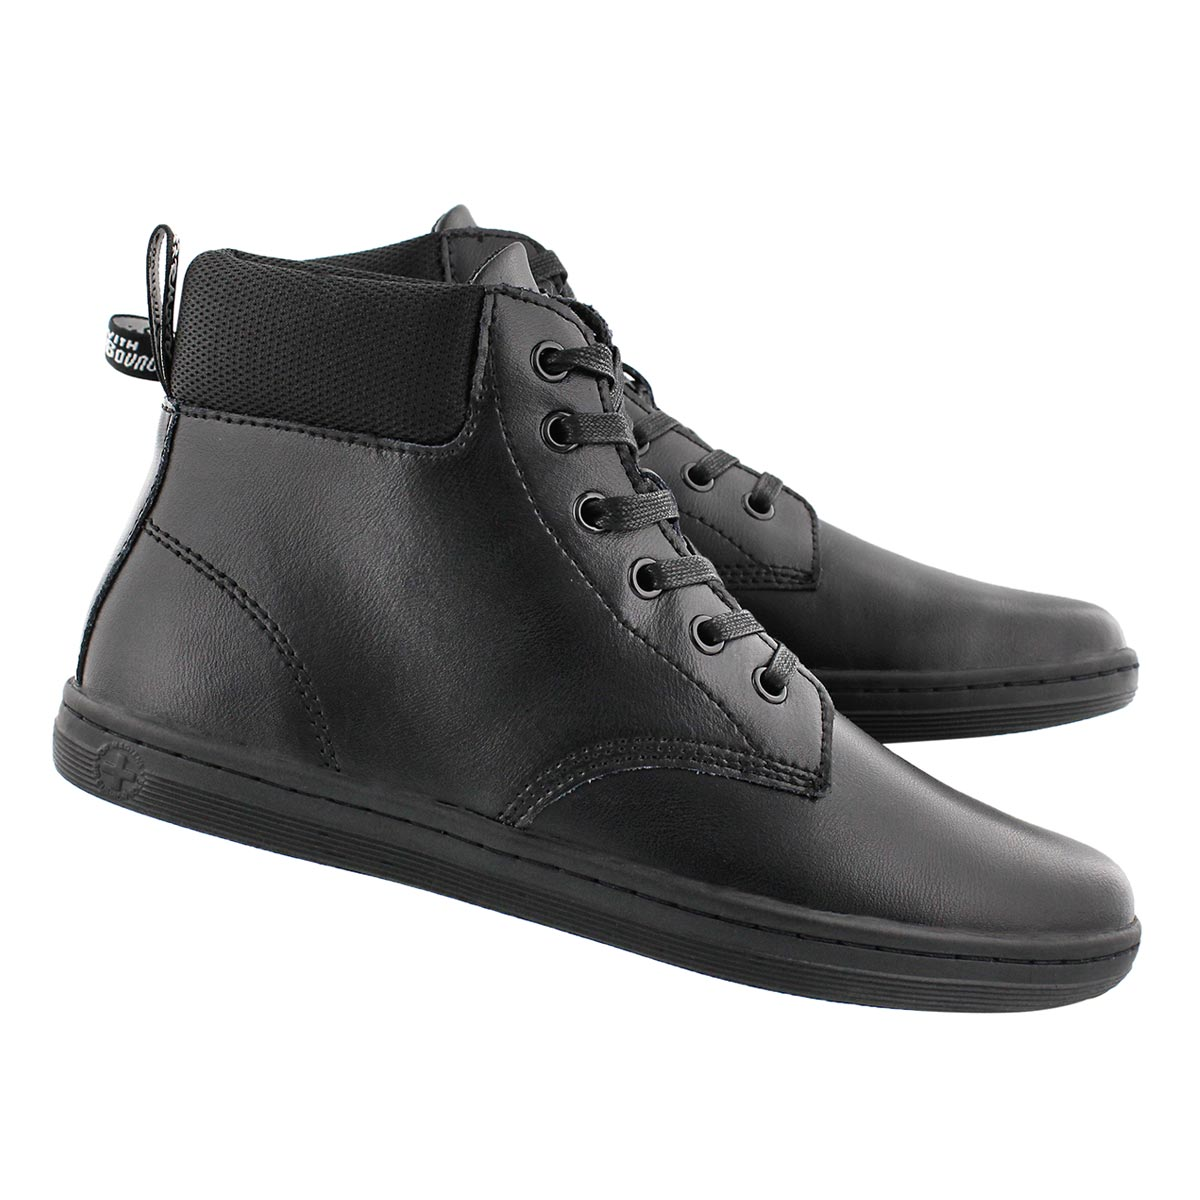 Lds Maelly 6 eye black ankle boot